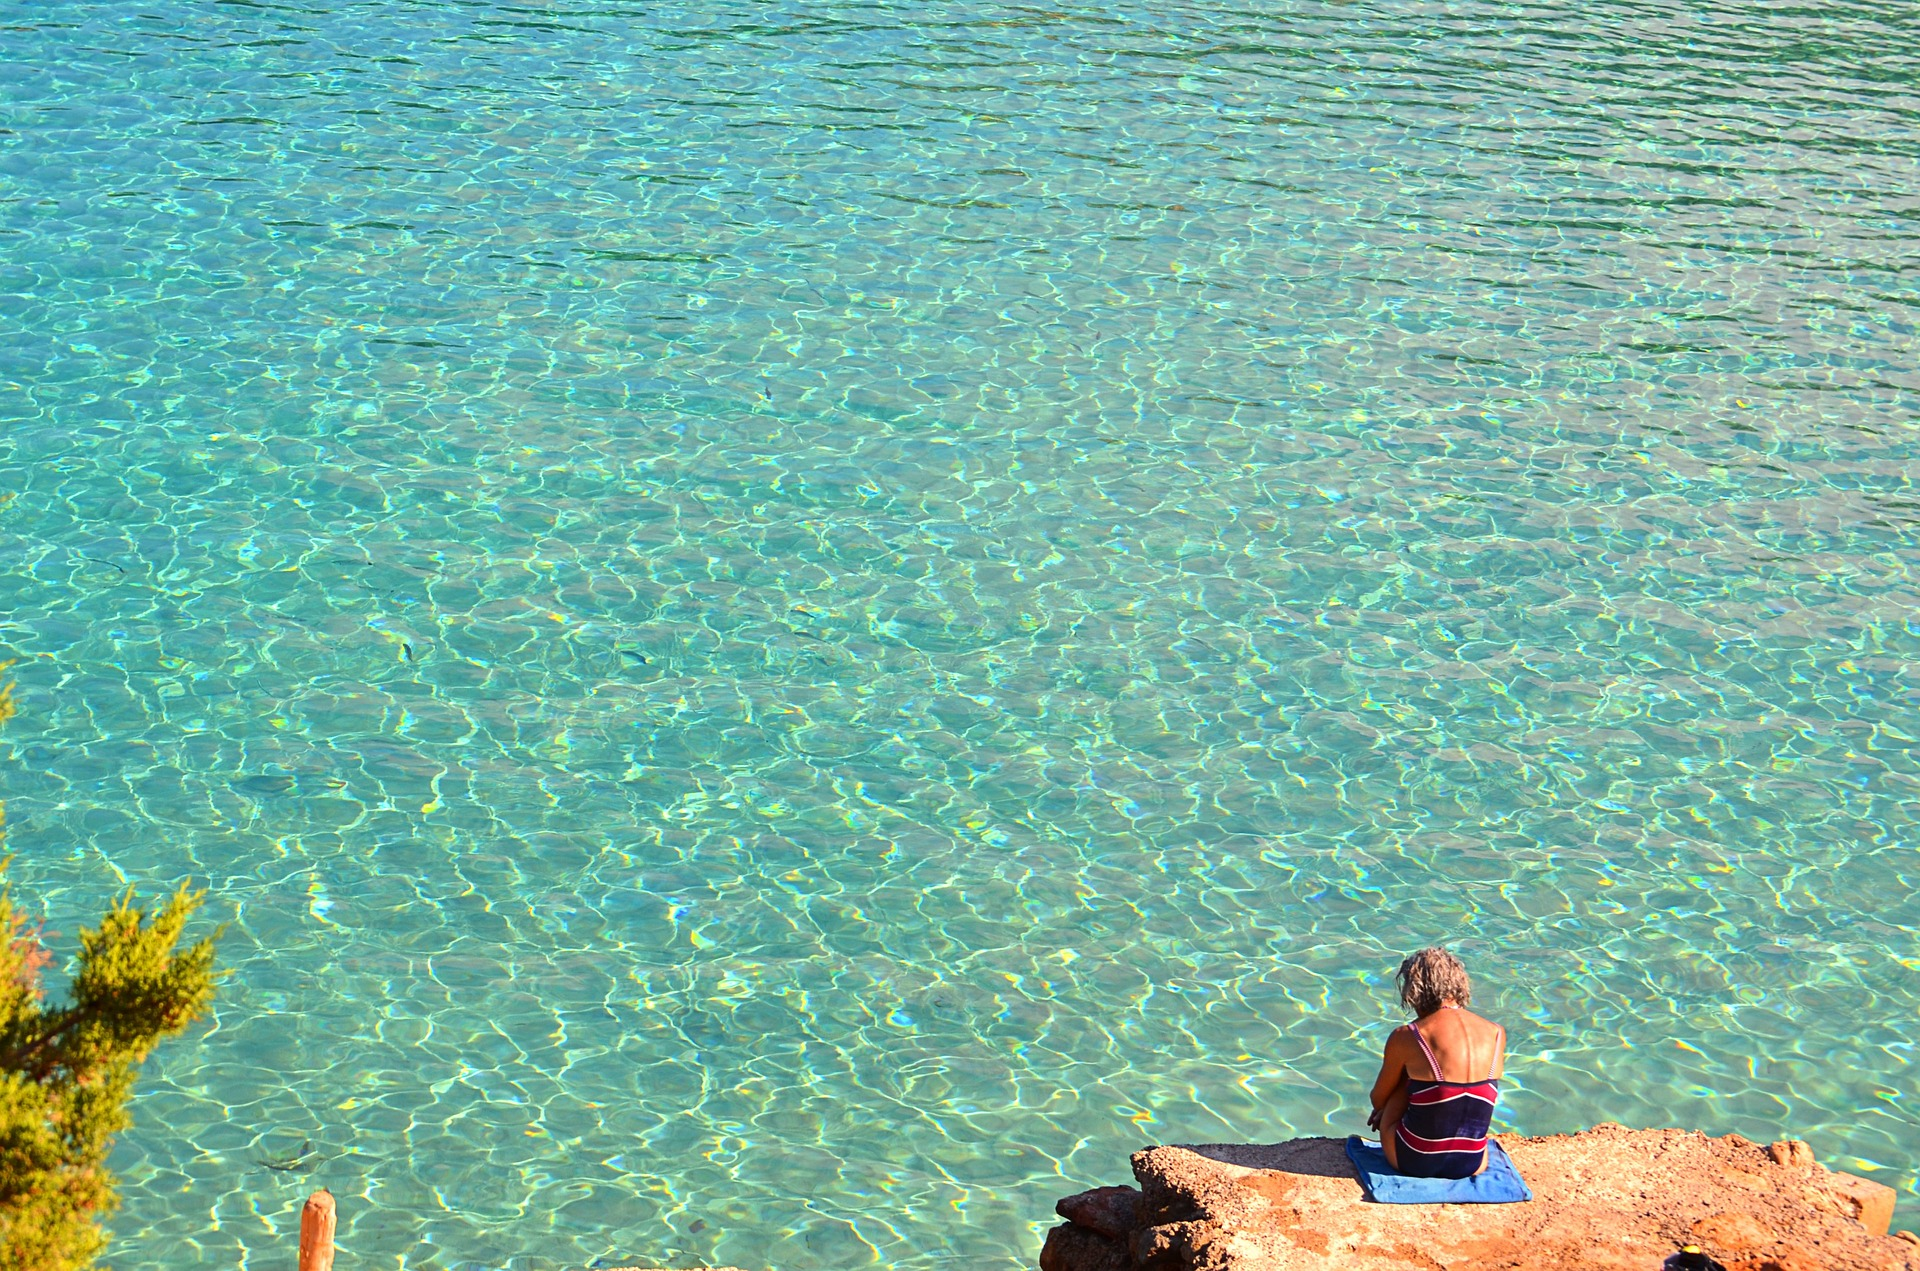 Ibiza House Rent & Ibiza House Sale, an island full of opportunities…